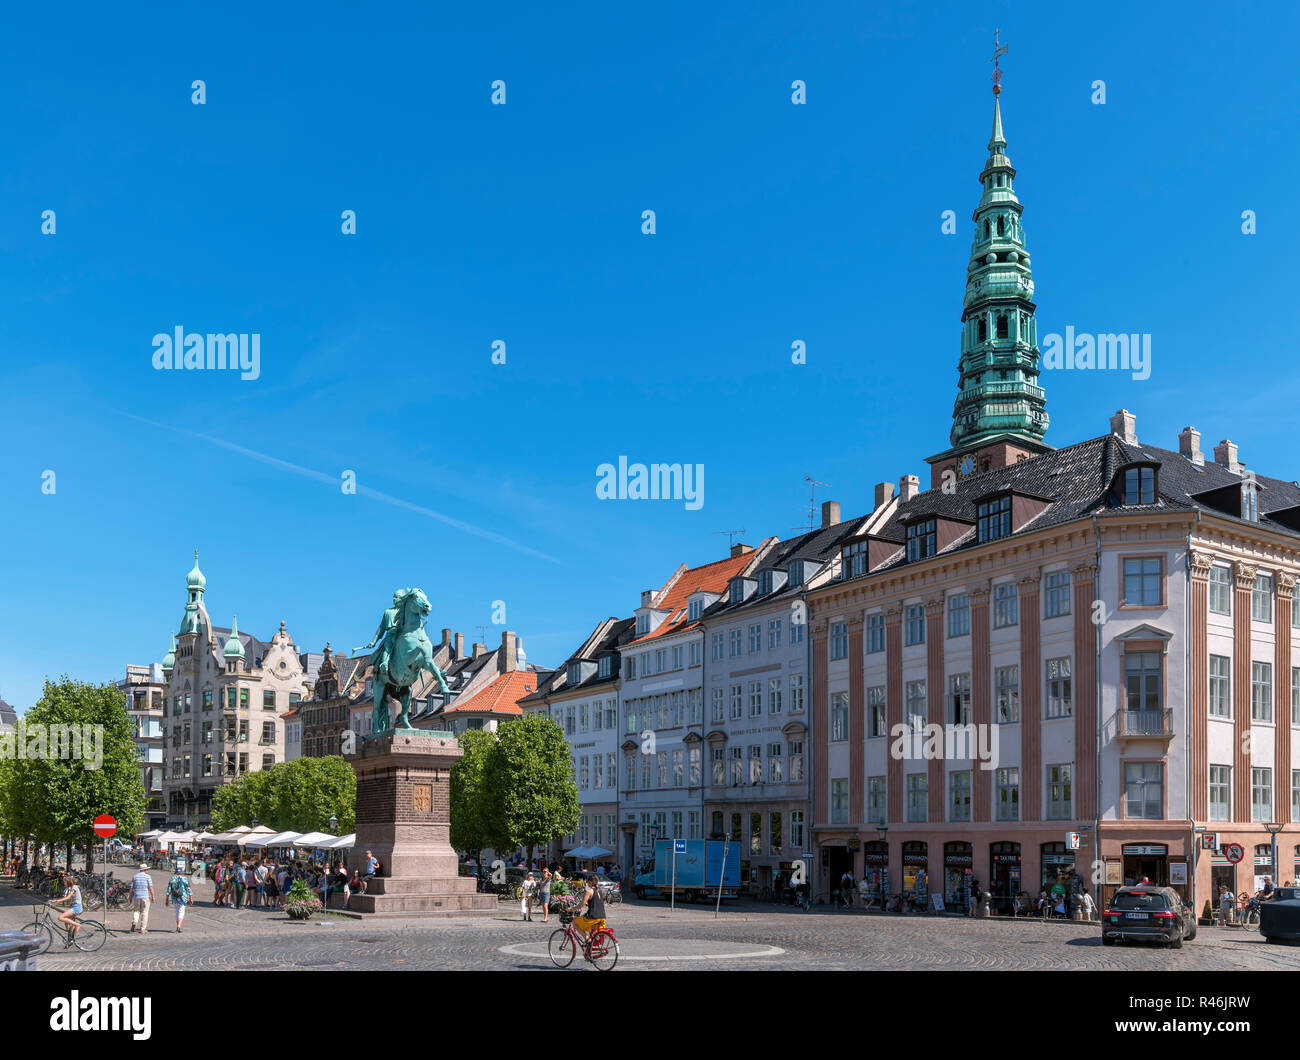 Statue of Archbishop Absalon and the spire of the former St Nicholas Church, Højbro Square, Copenhagen, Zealand, Denmark - Stock Image